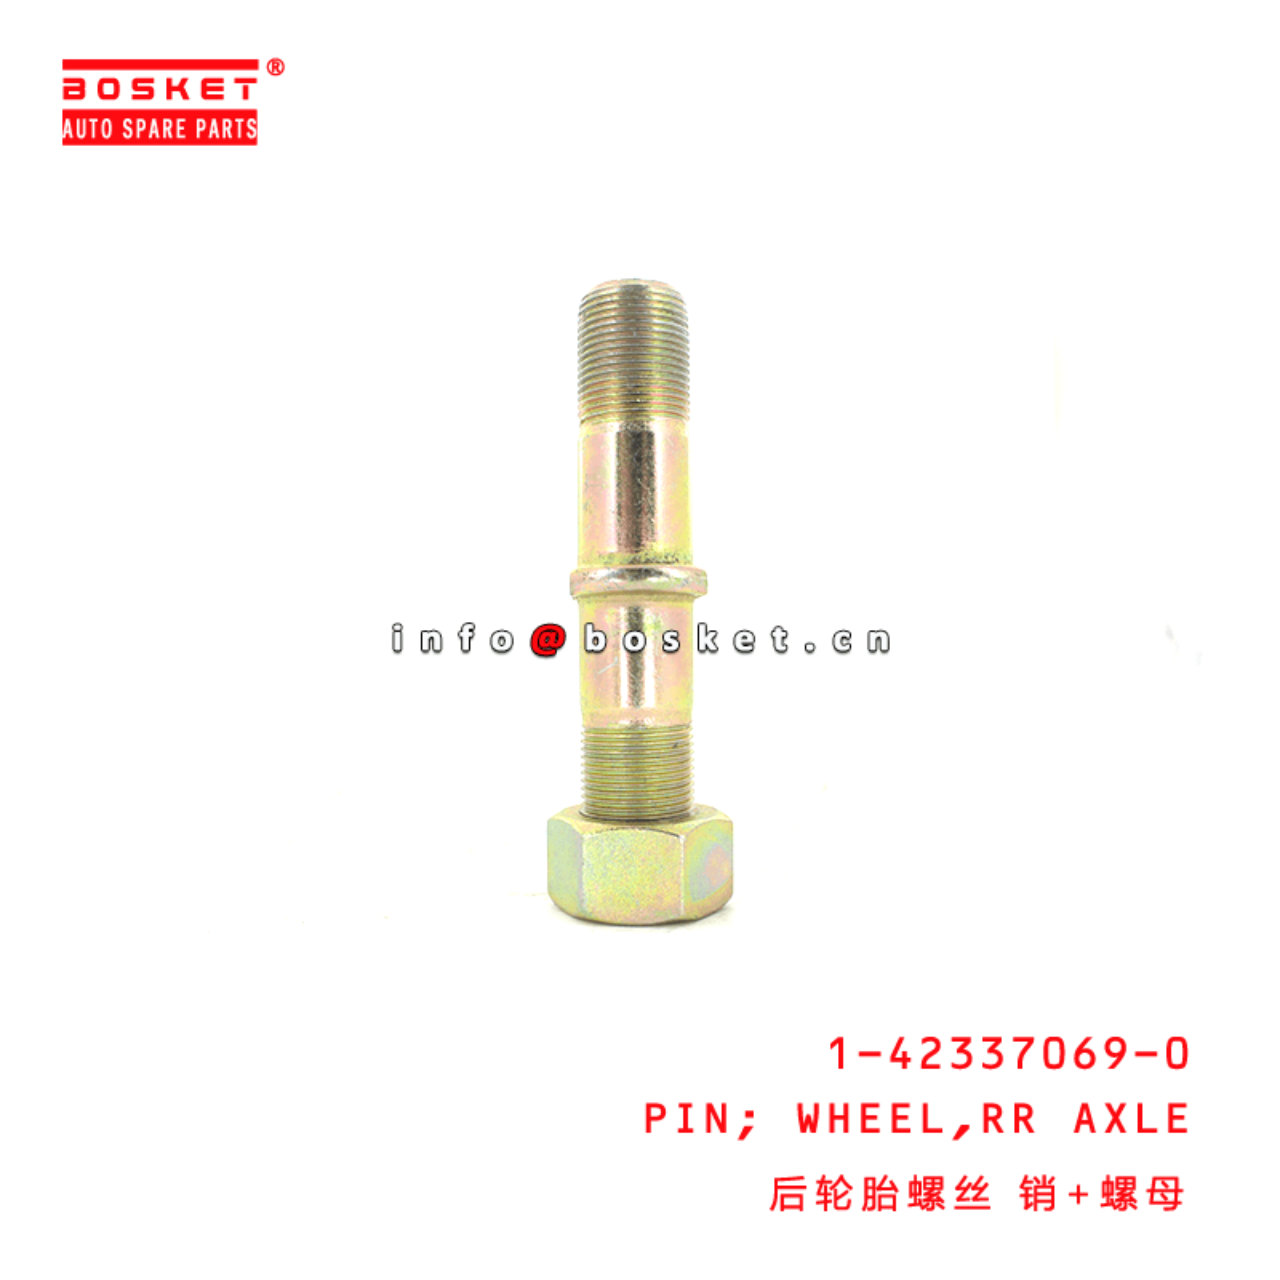 1-42337069-0 Rear Axle Wheel Pin 1423370690 Suitable for ISUZU FVR